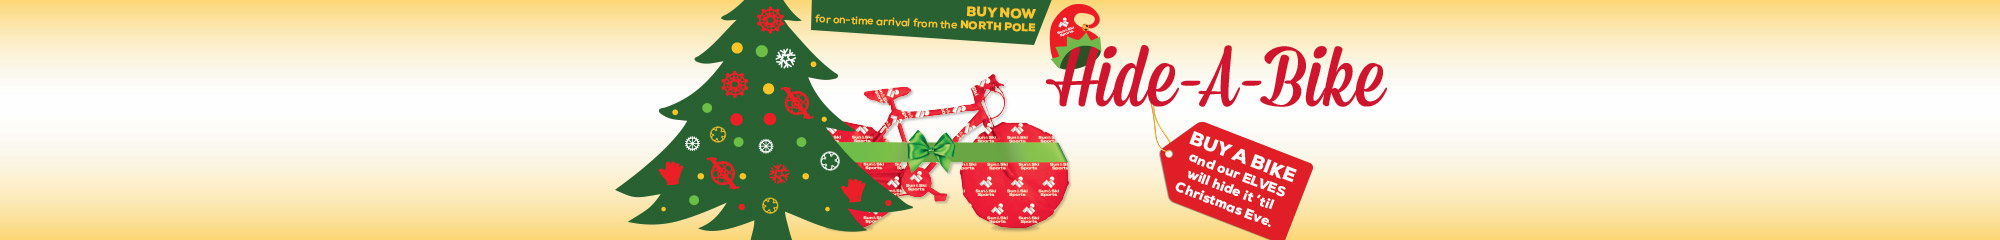 Hide a Bike - Purchase a bike now and we will hide it until Christmas Eve.